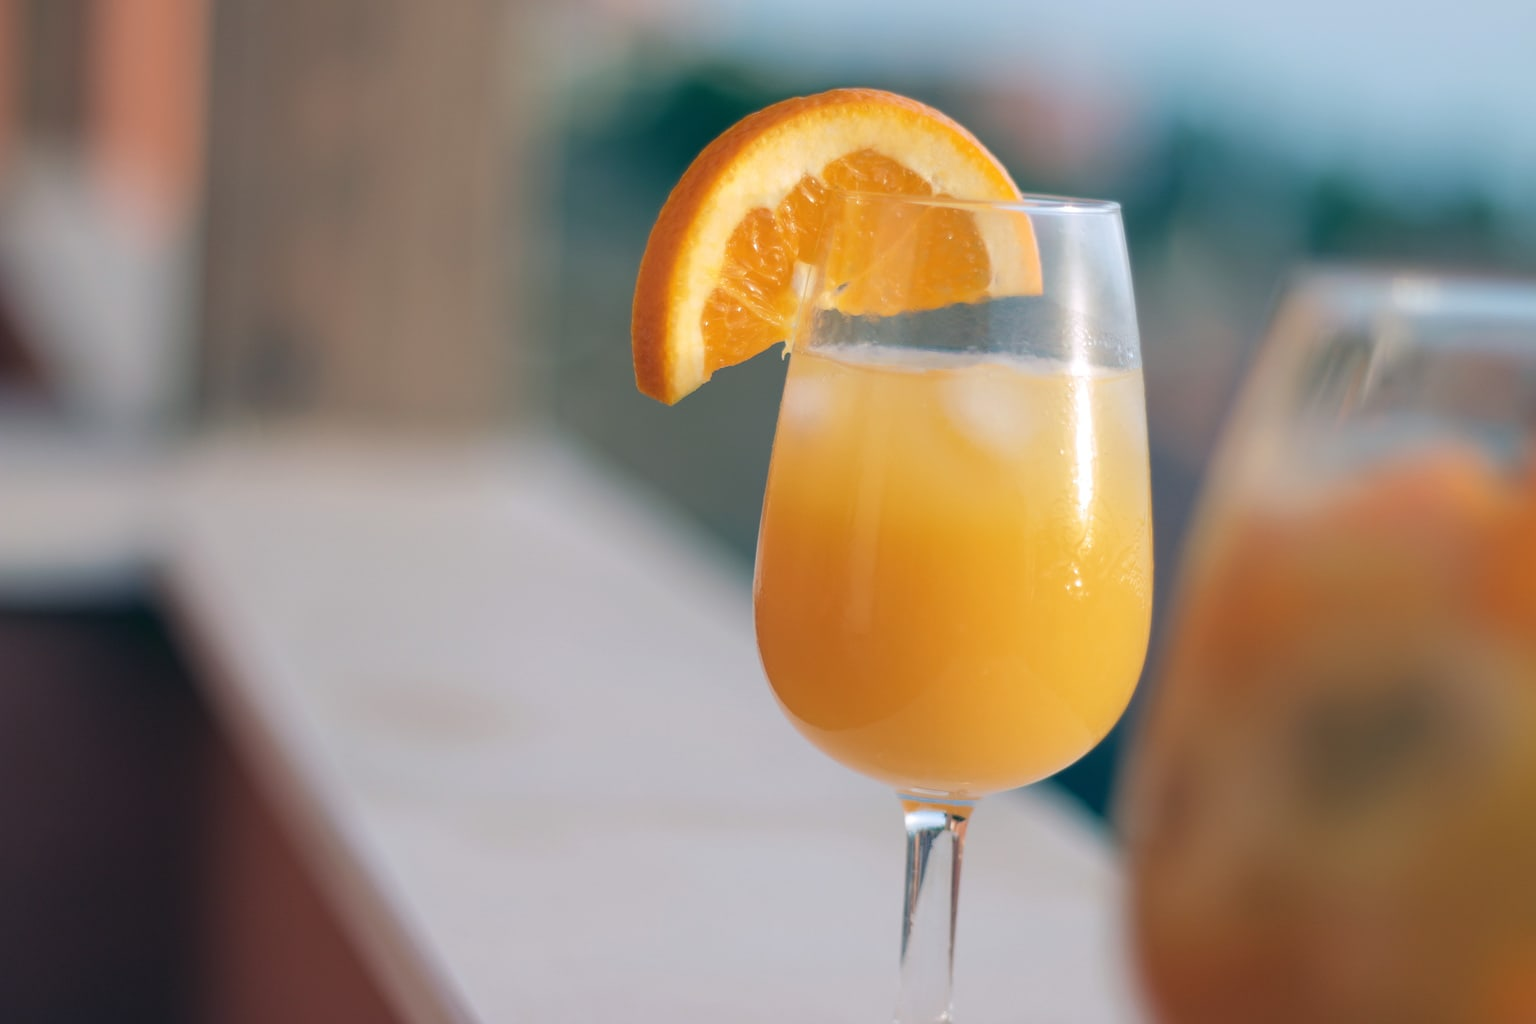 A mimosa in a glass with an orange wedge